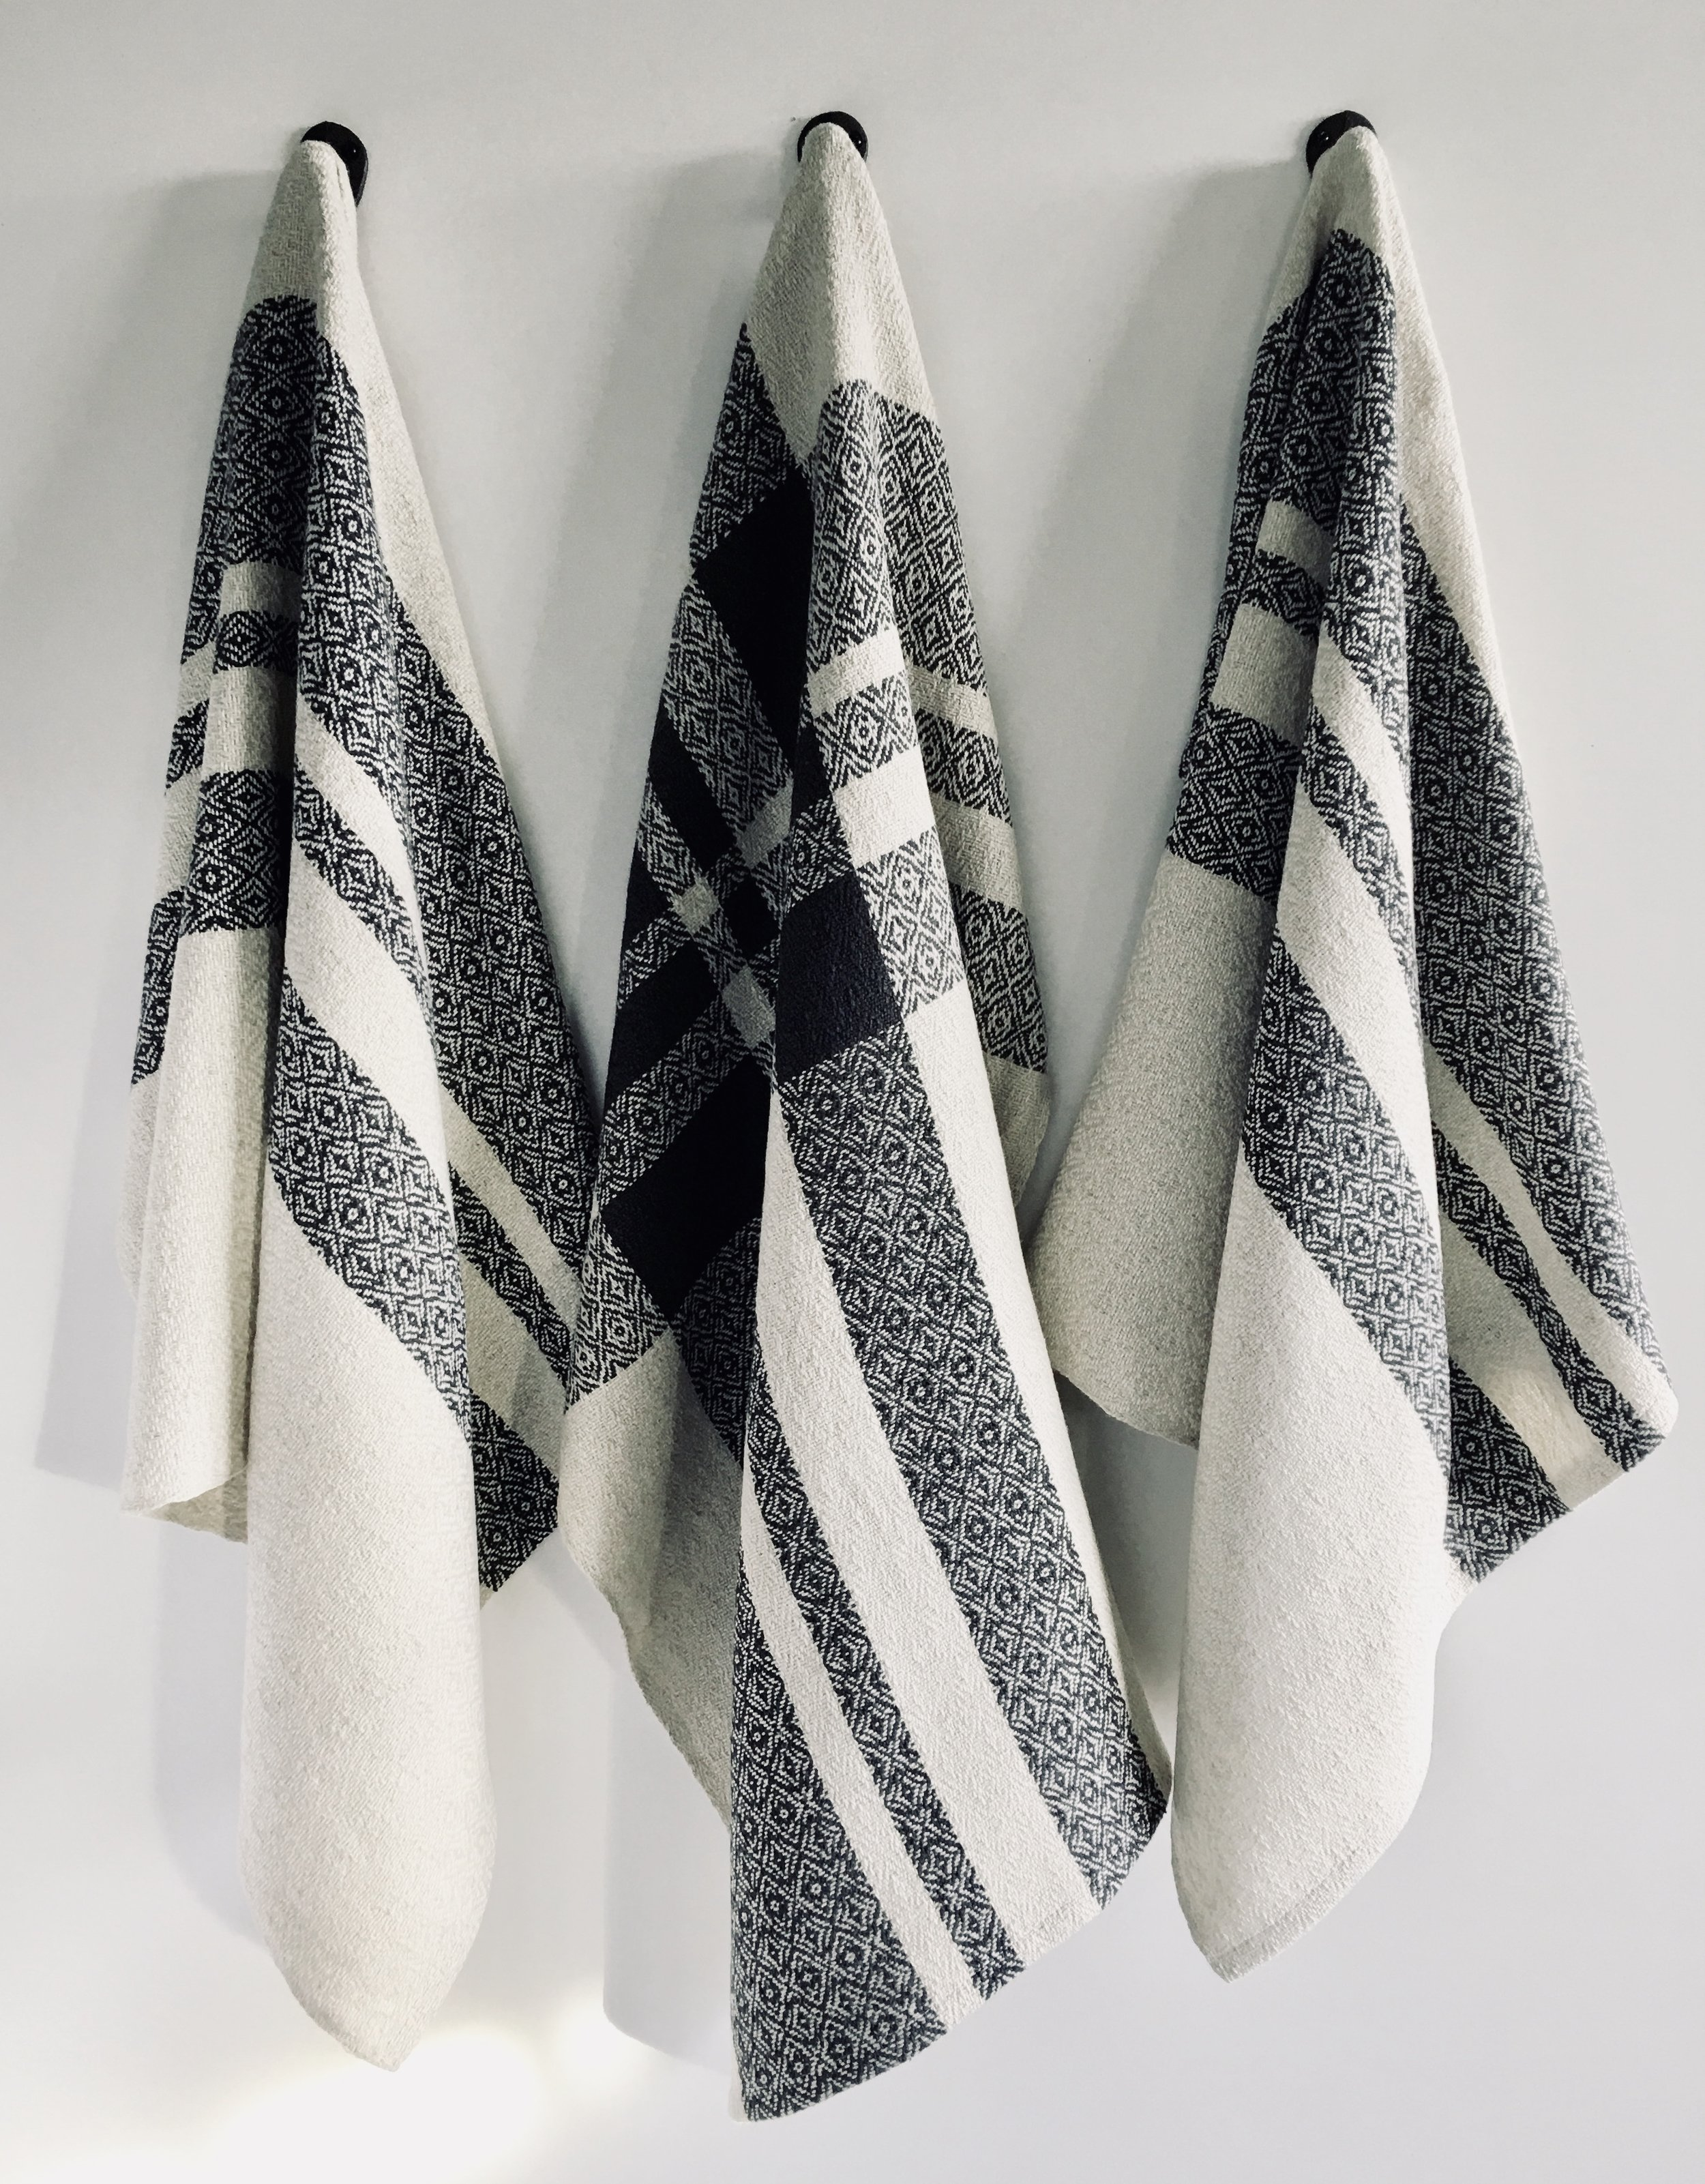 The Final Product…. - From yarn to handwoven finished cloth, a craft ready to be put to work in your home.